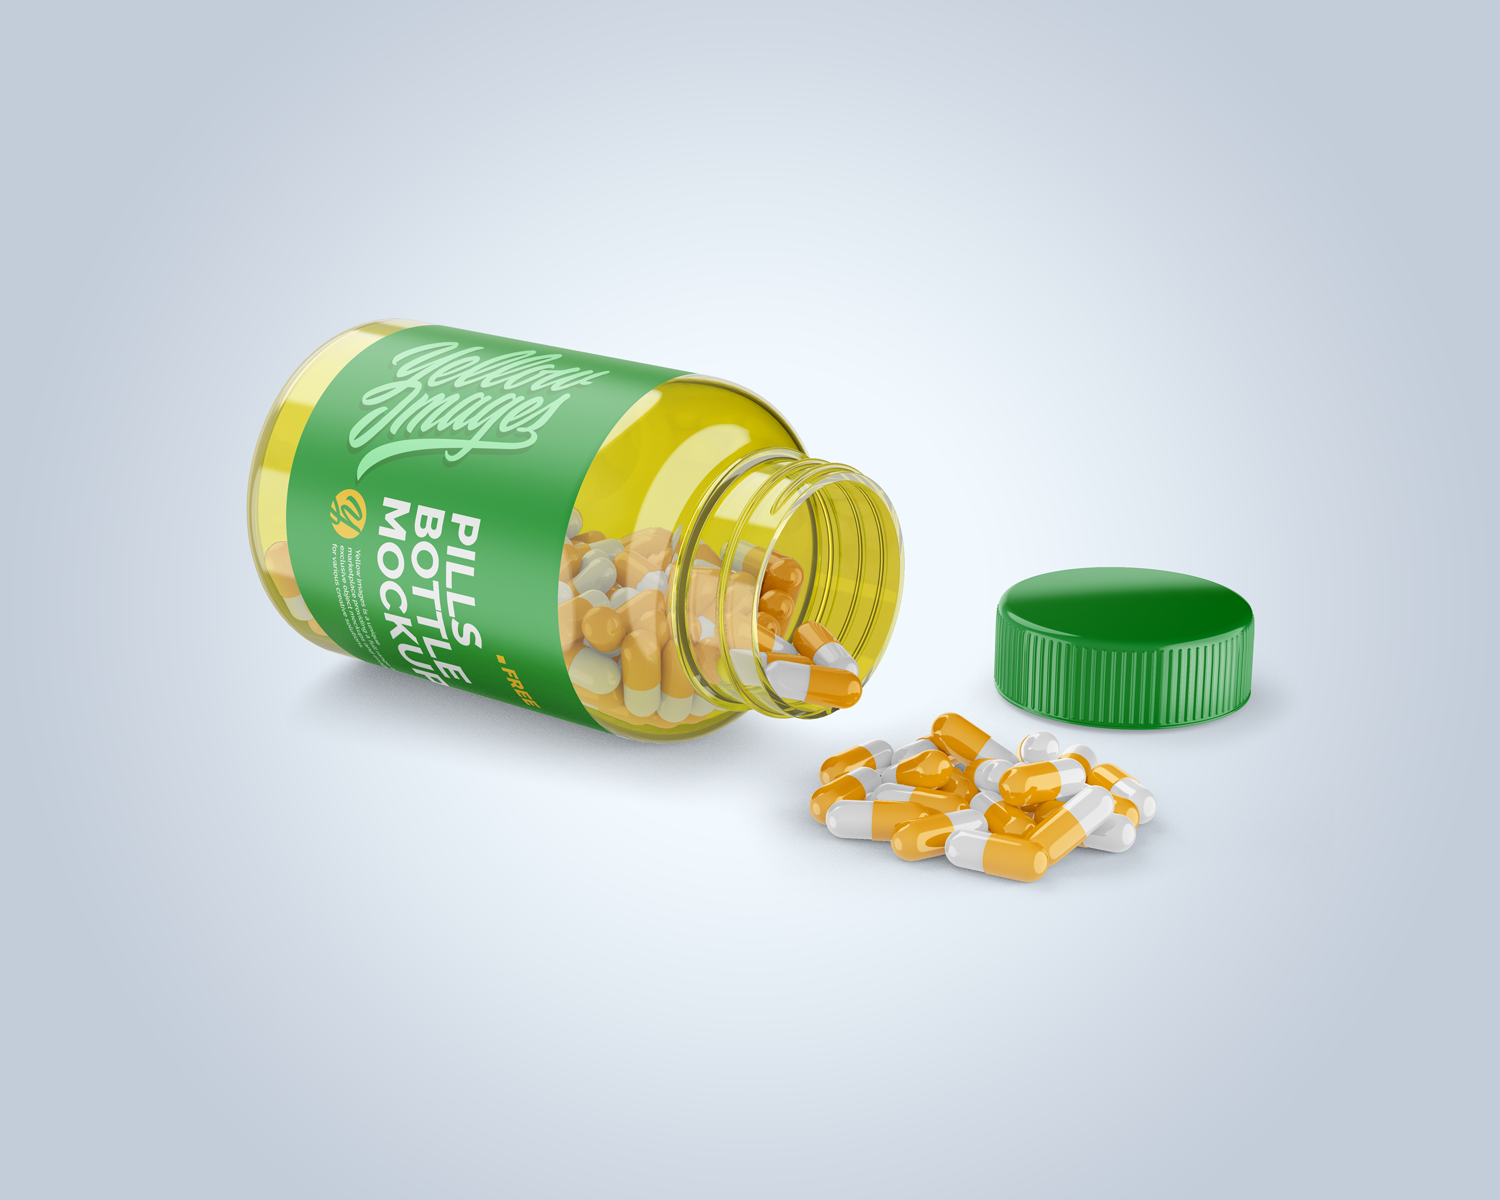 Opened Transparent Bottle With Pills Mockup To Display Your Pills Package Design In A More Efficie Free Packaging Mockup Packaging Mockup Pill Packaging Design